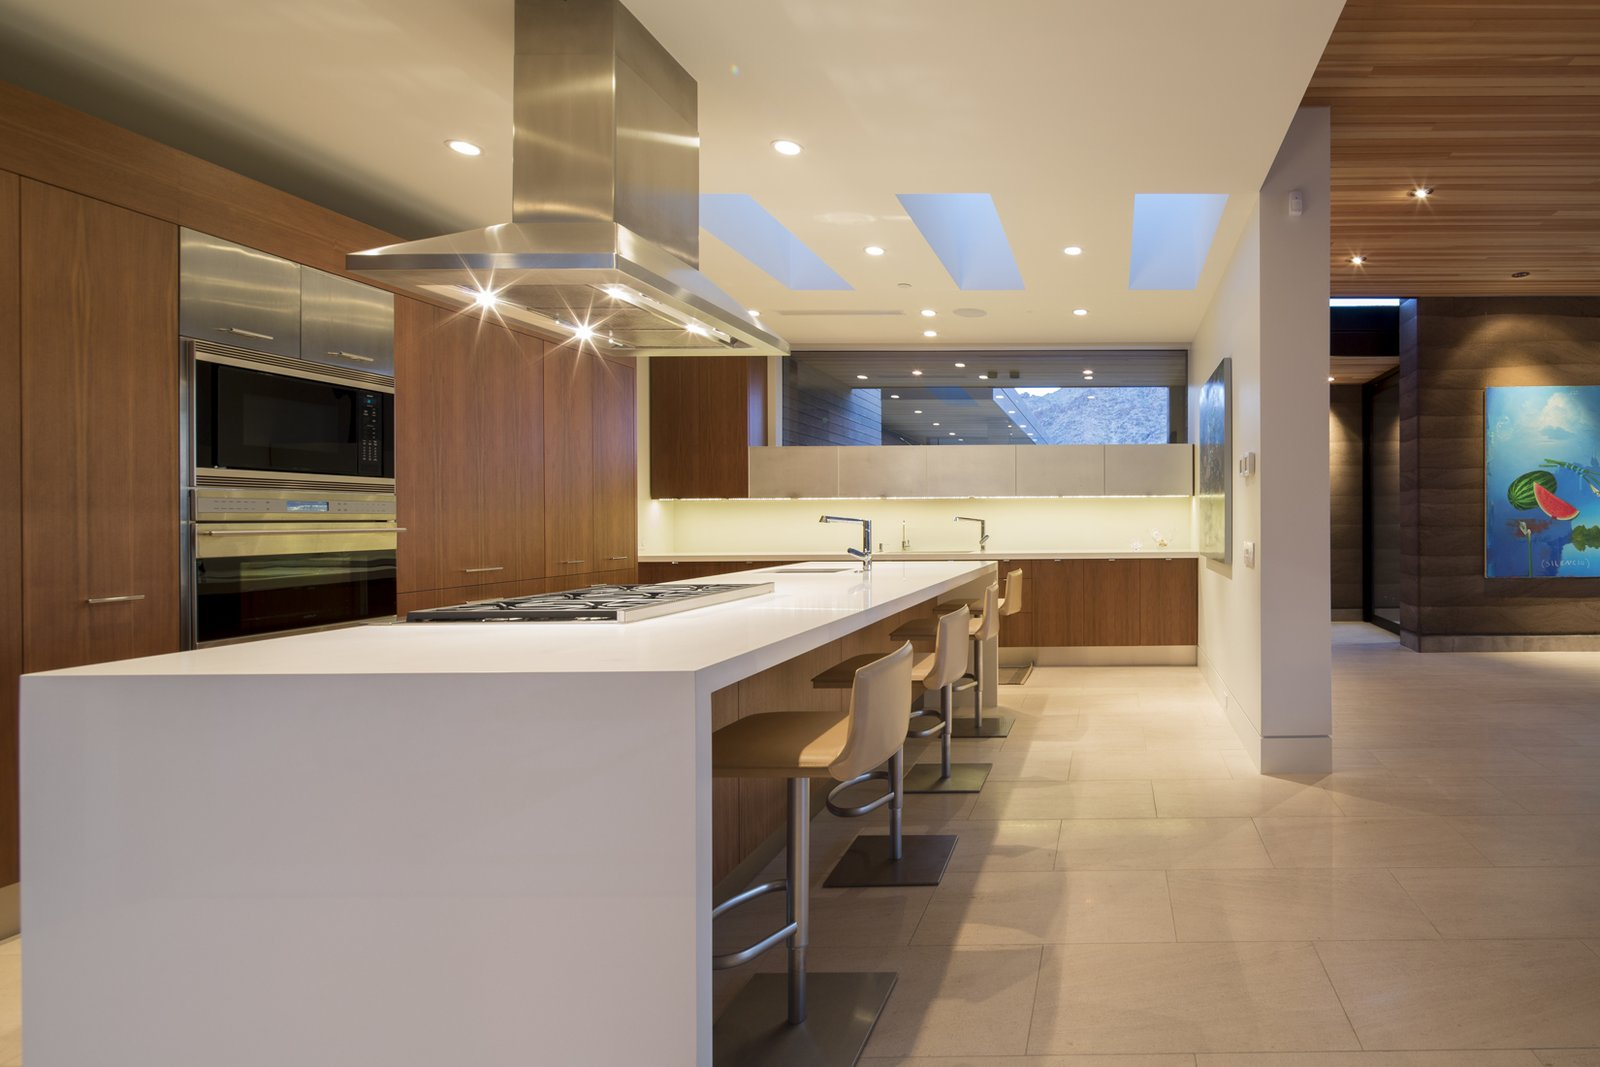 Kitchen, Quartzite Counter, Limestone Floor, Stone Slab Backsplashe, Recessed Lighting, Wood Cabinet, Refrigerator, Wall Oven, Microwave, Cooktops, and Undermount Sink  Rammed Earth Modern